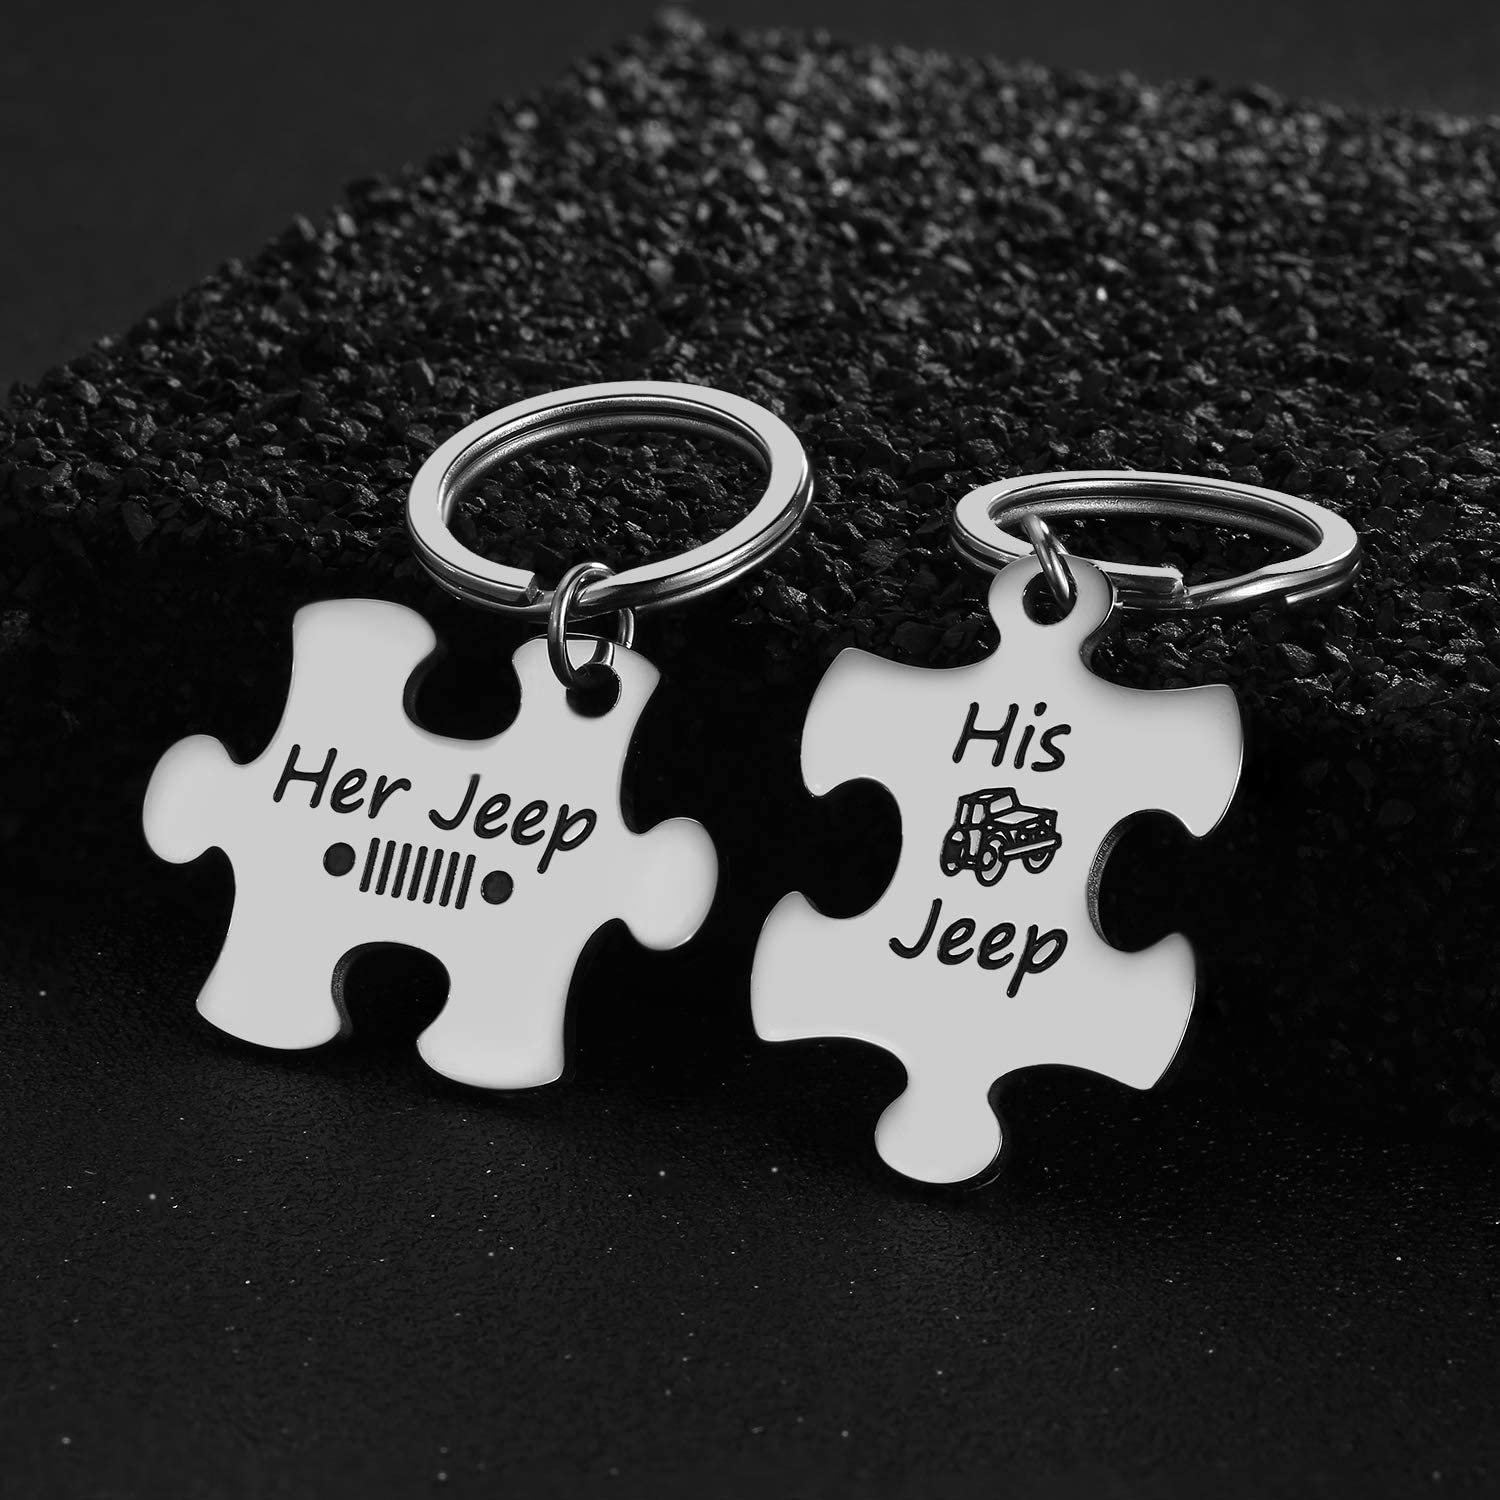 Engraved Jewelry Birthday Anniversary Valentine/'s Day Gifts Keychain Gifts for Boys Girls